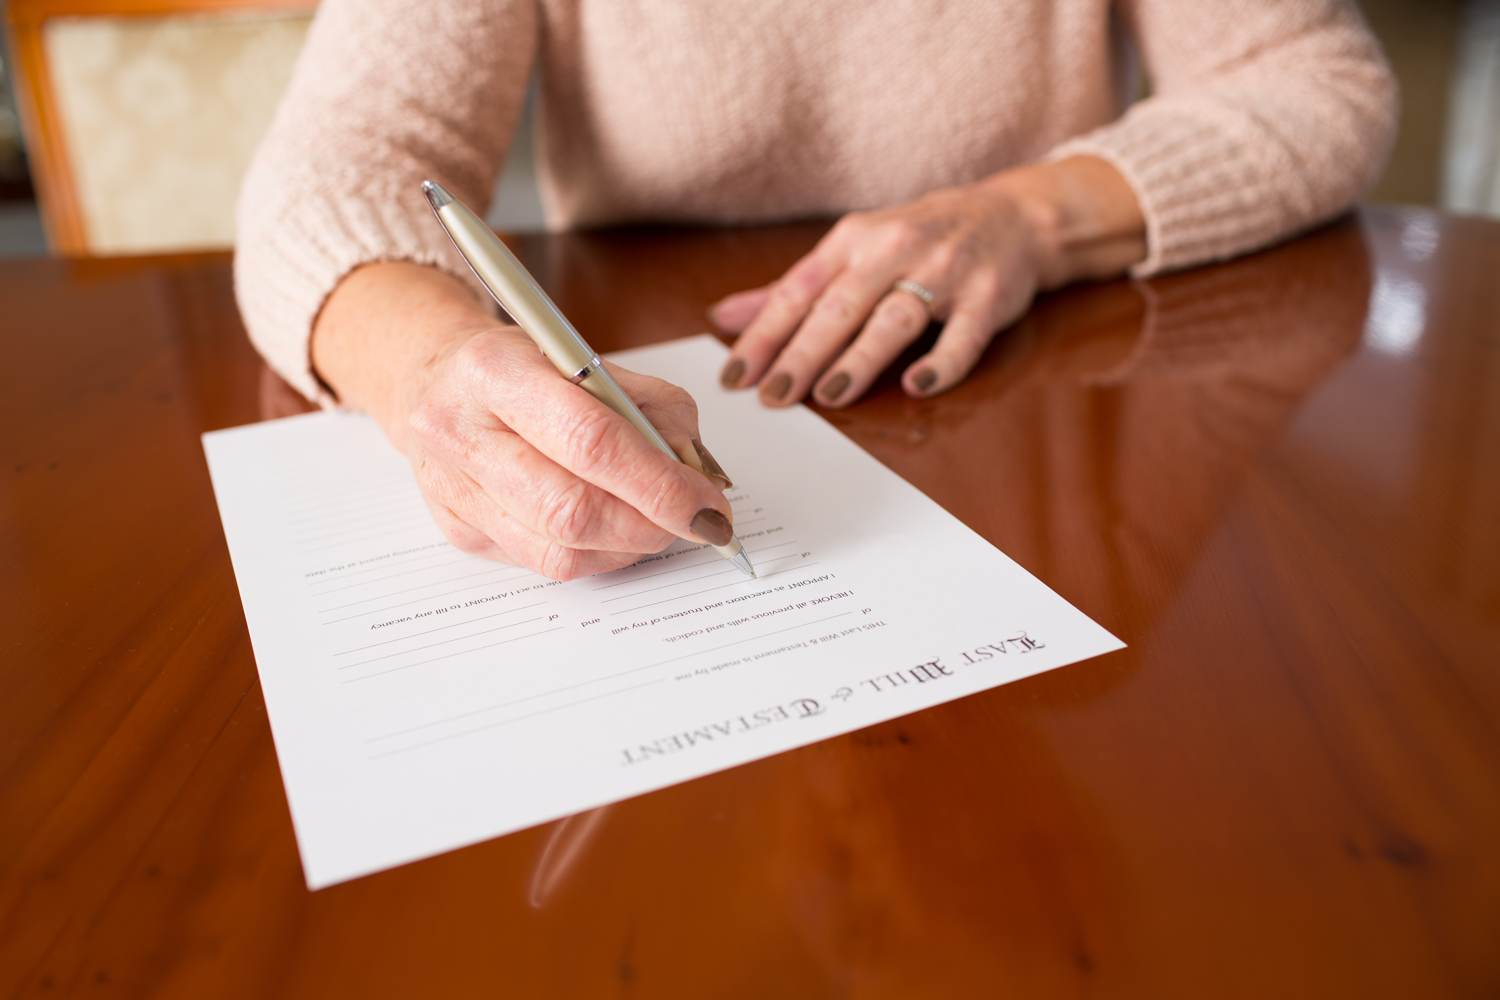 Signing a last will